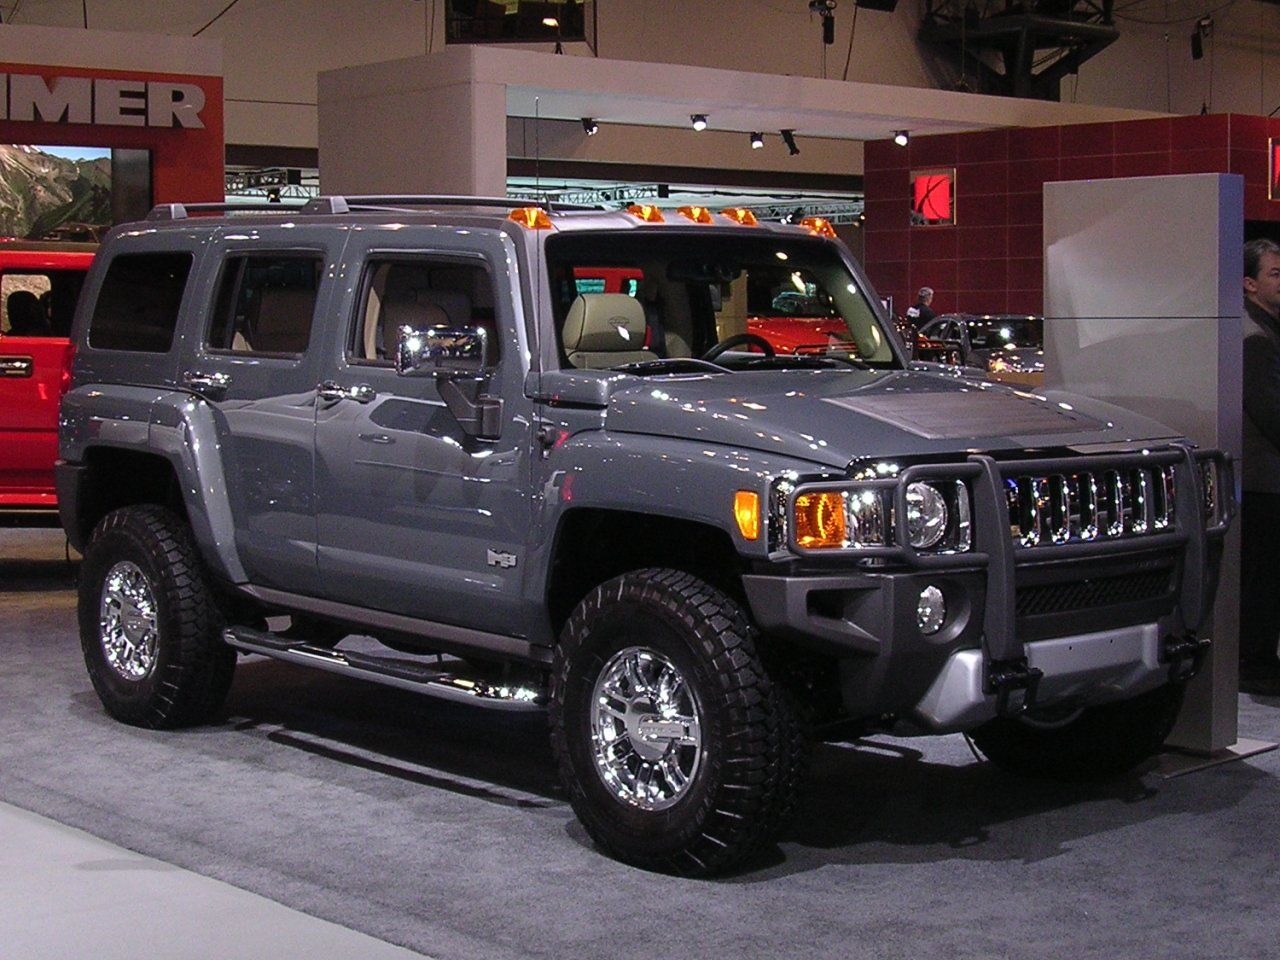 The h3 is the smallest of the three hummer models and though the h3 concept